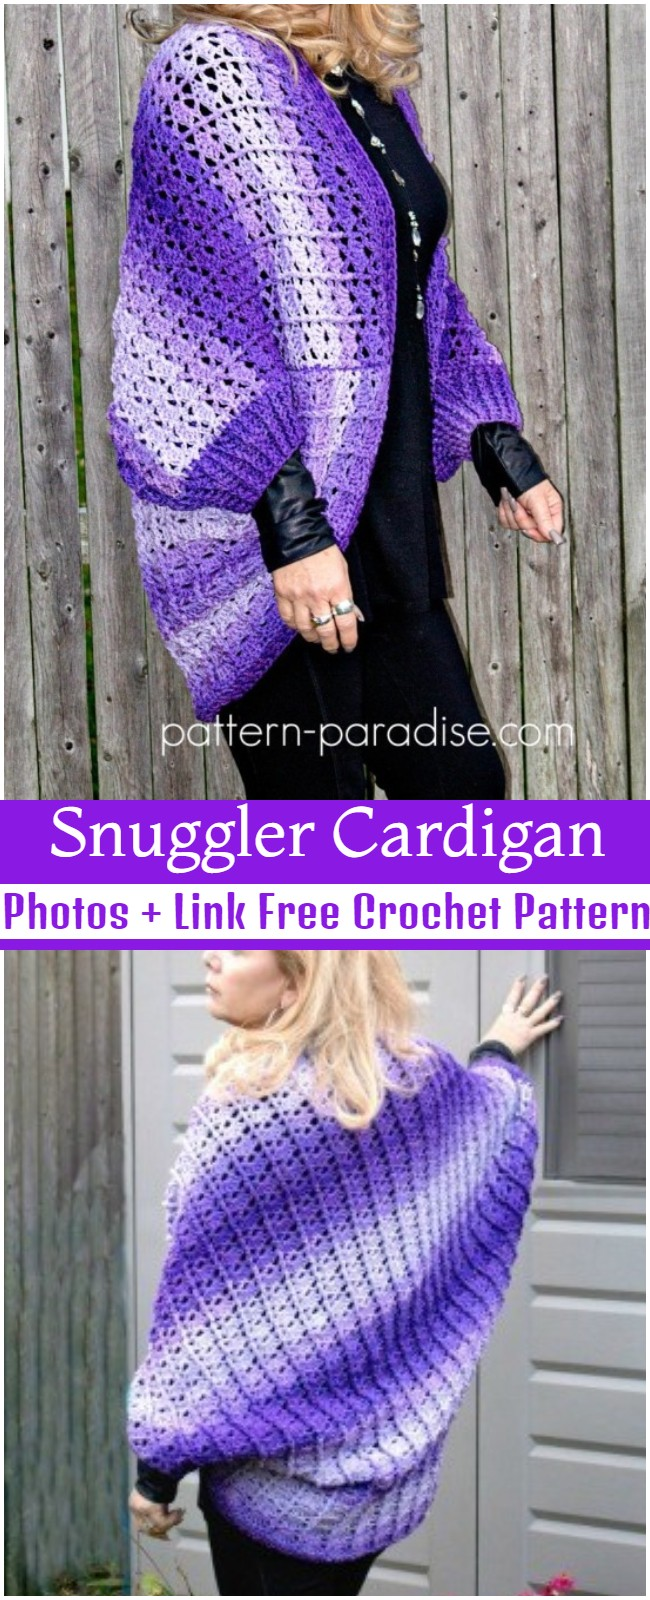 Crochet Snuggler Cardigan Pattern